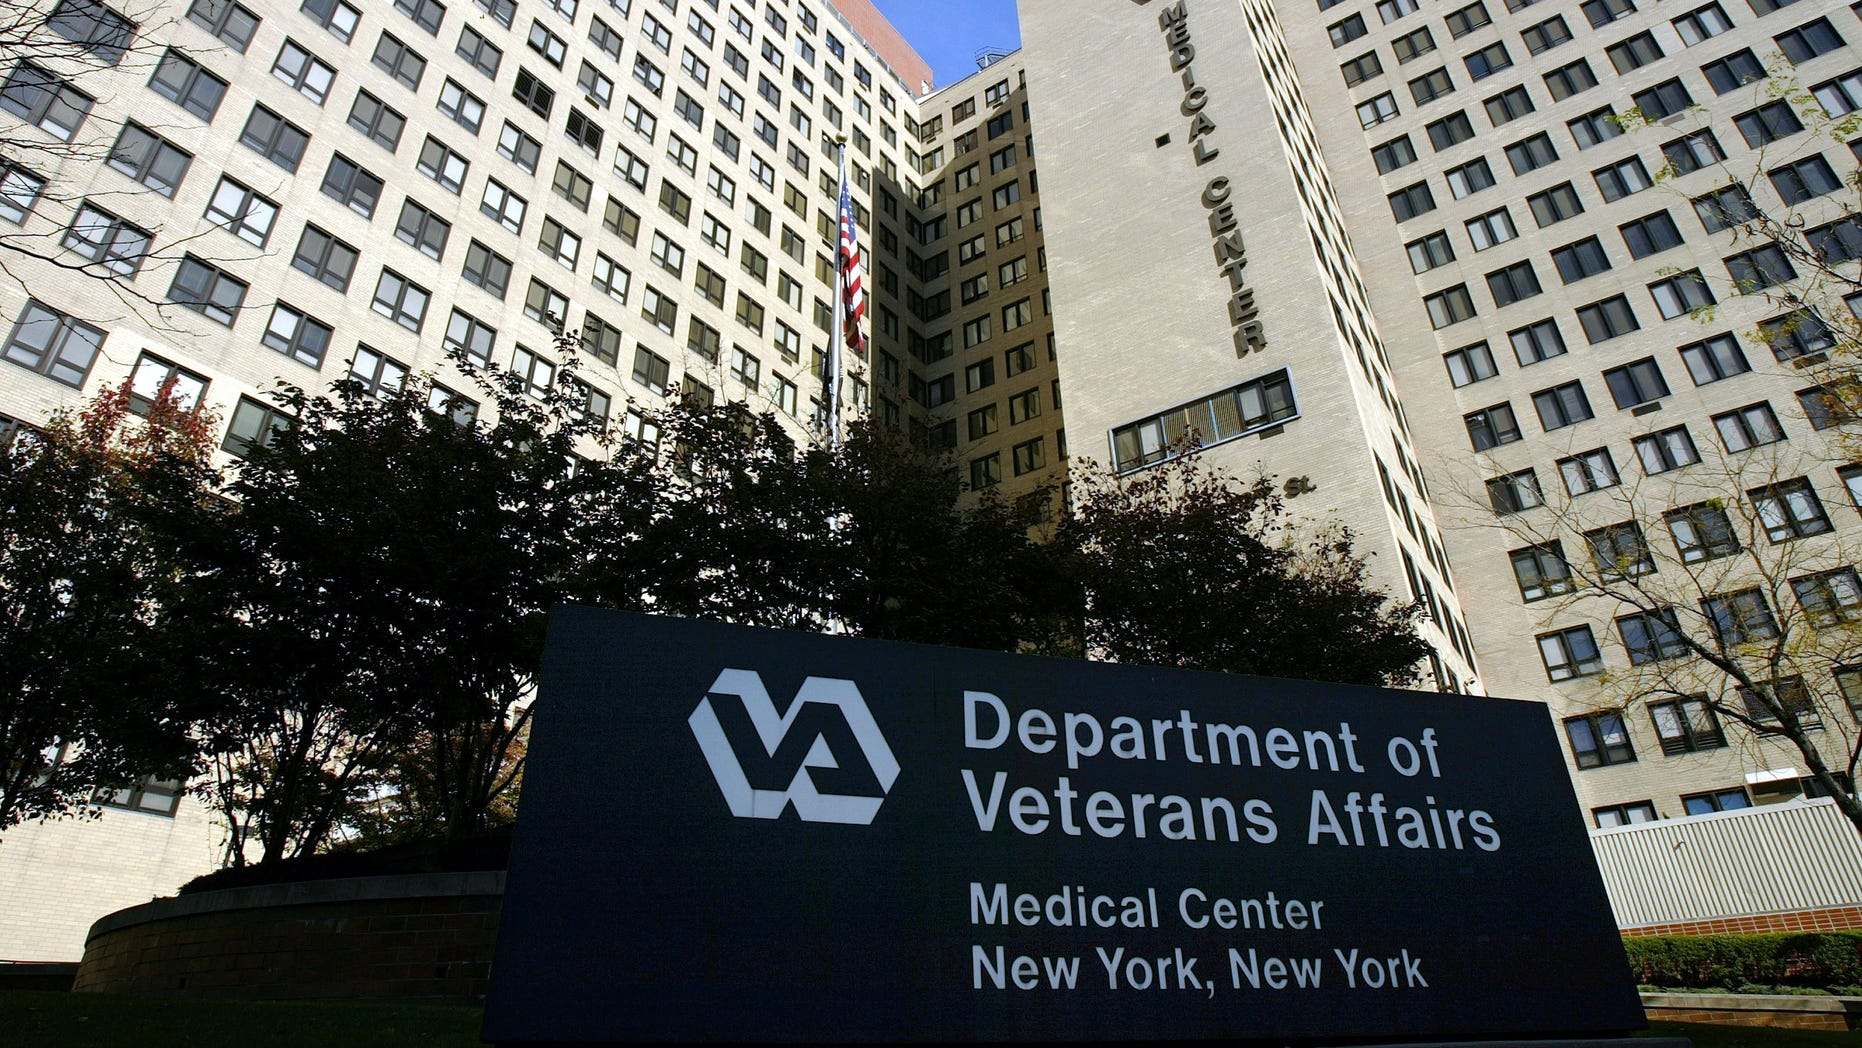 The exterior of the Veterans Affairs Hospital is seen November 10, 2003 in New York City. (Photo: Spencer Platt/Getty Images)